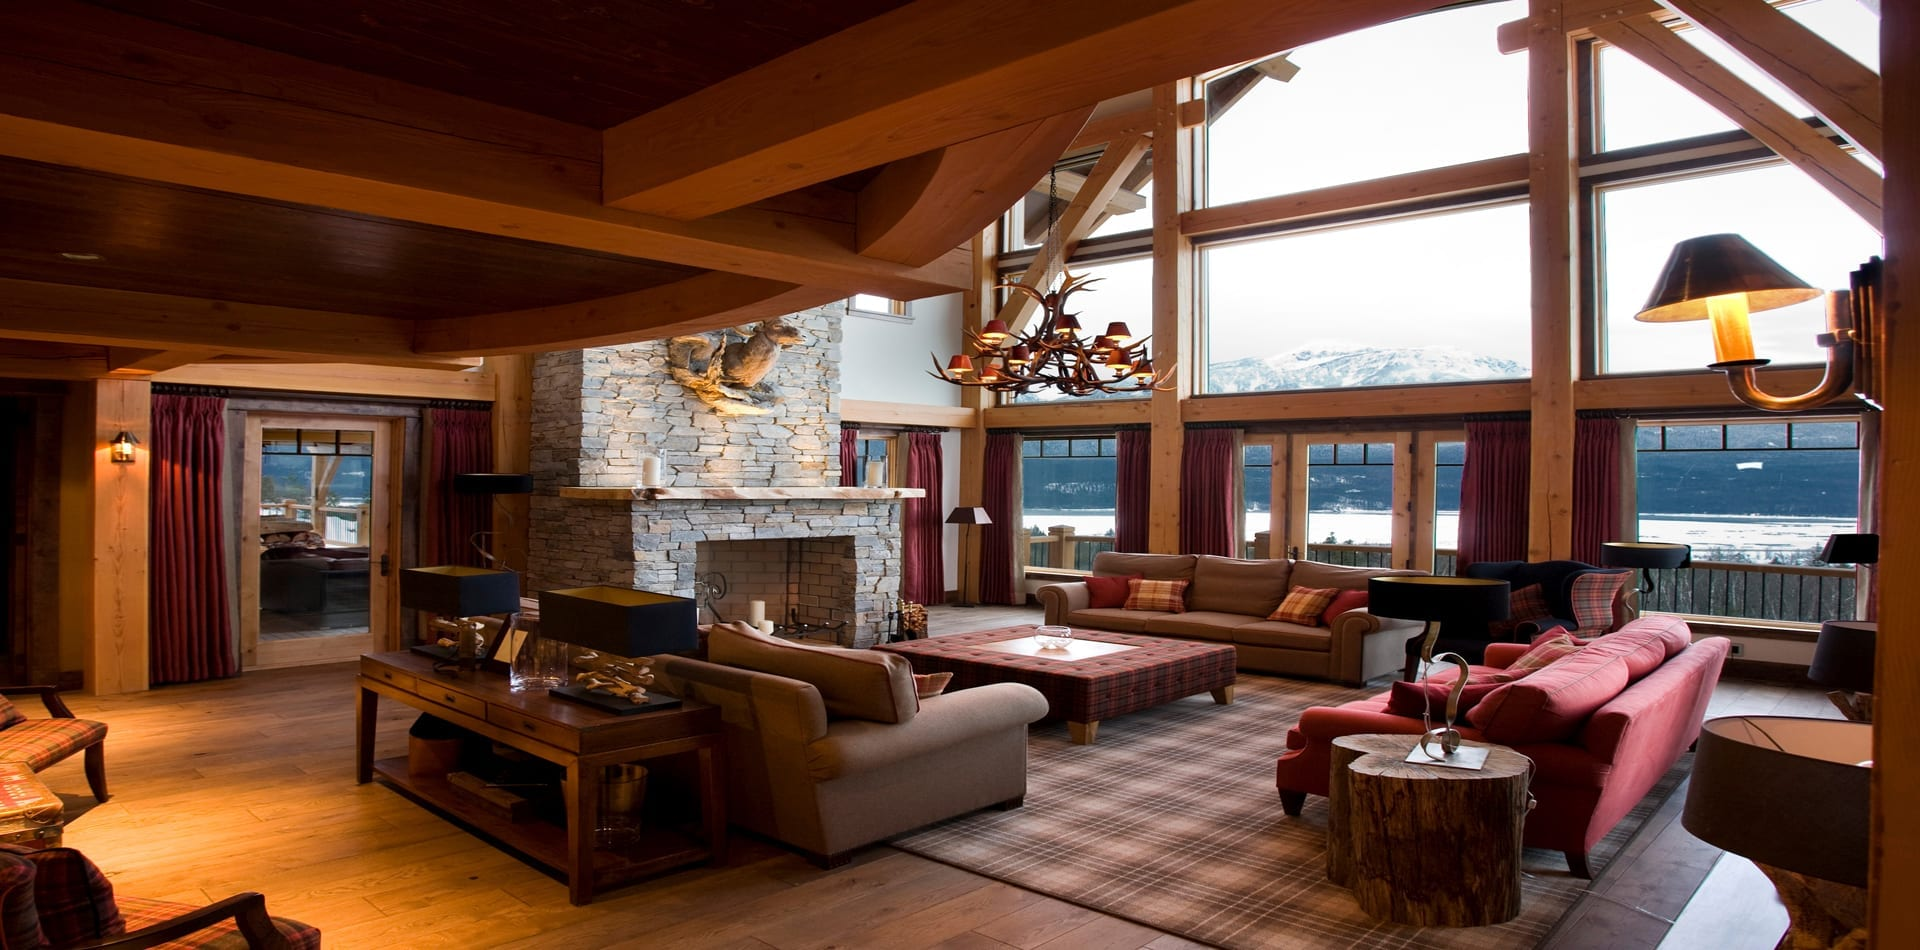 British Columbia Chalet Bighorn Living Room with Panoramic Views in Canada